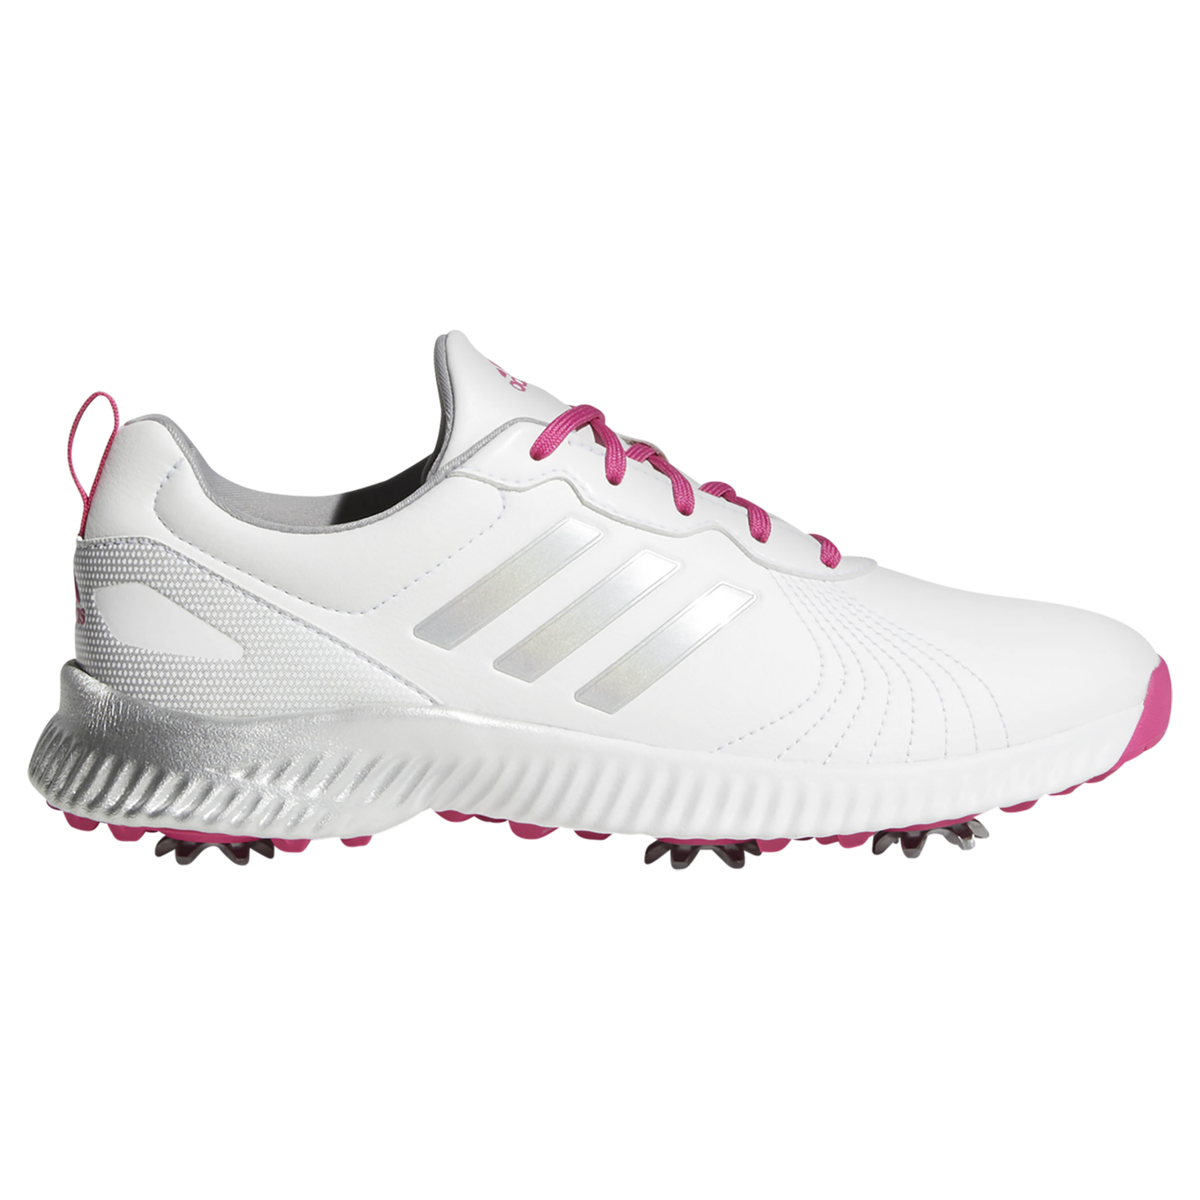 617ddb6d0b77c Images. Response Bounce Women  39 s Golf Shoe - White Pink